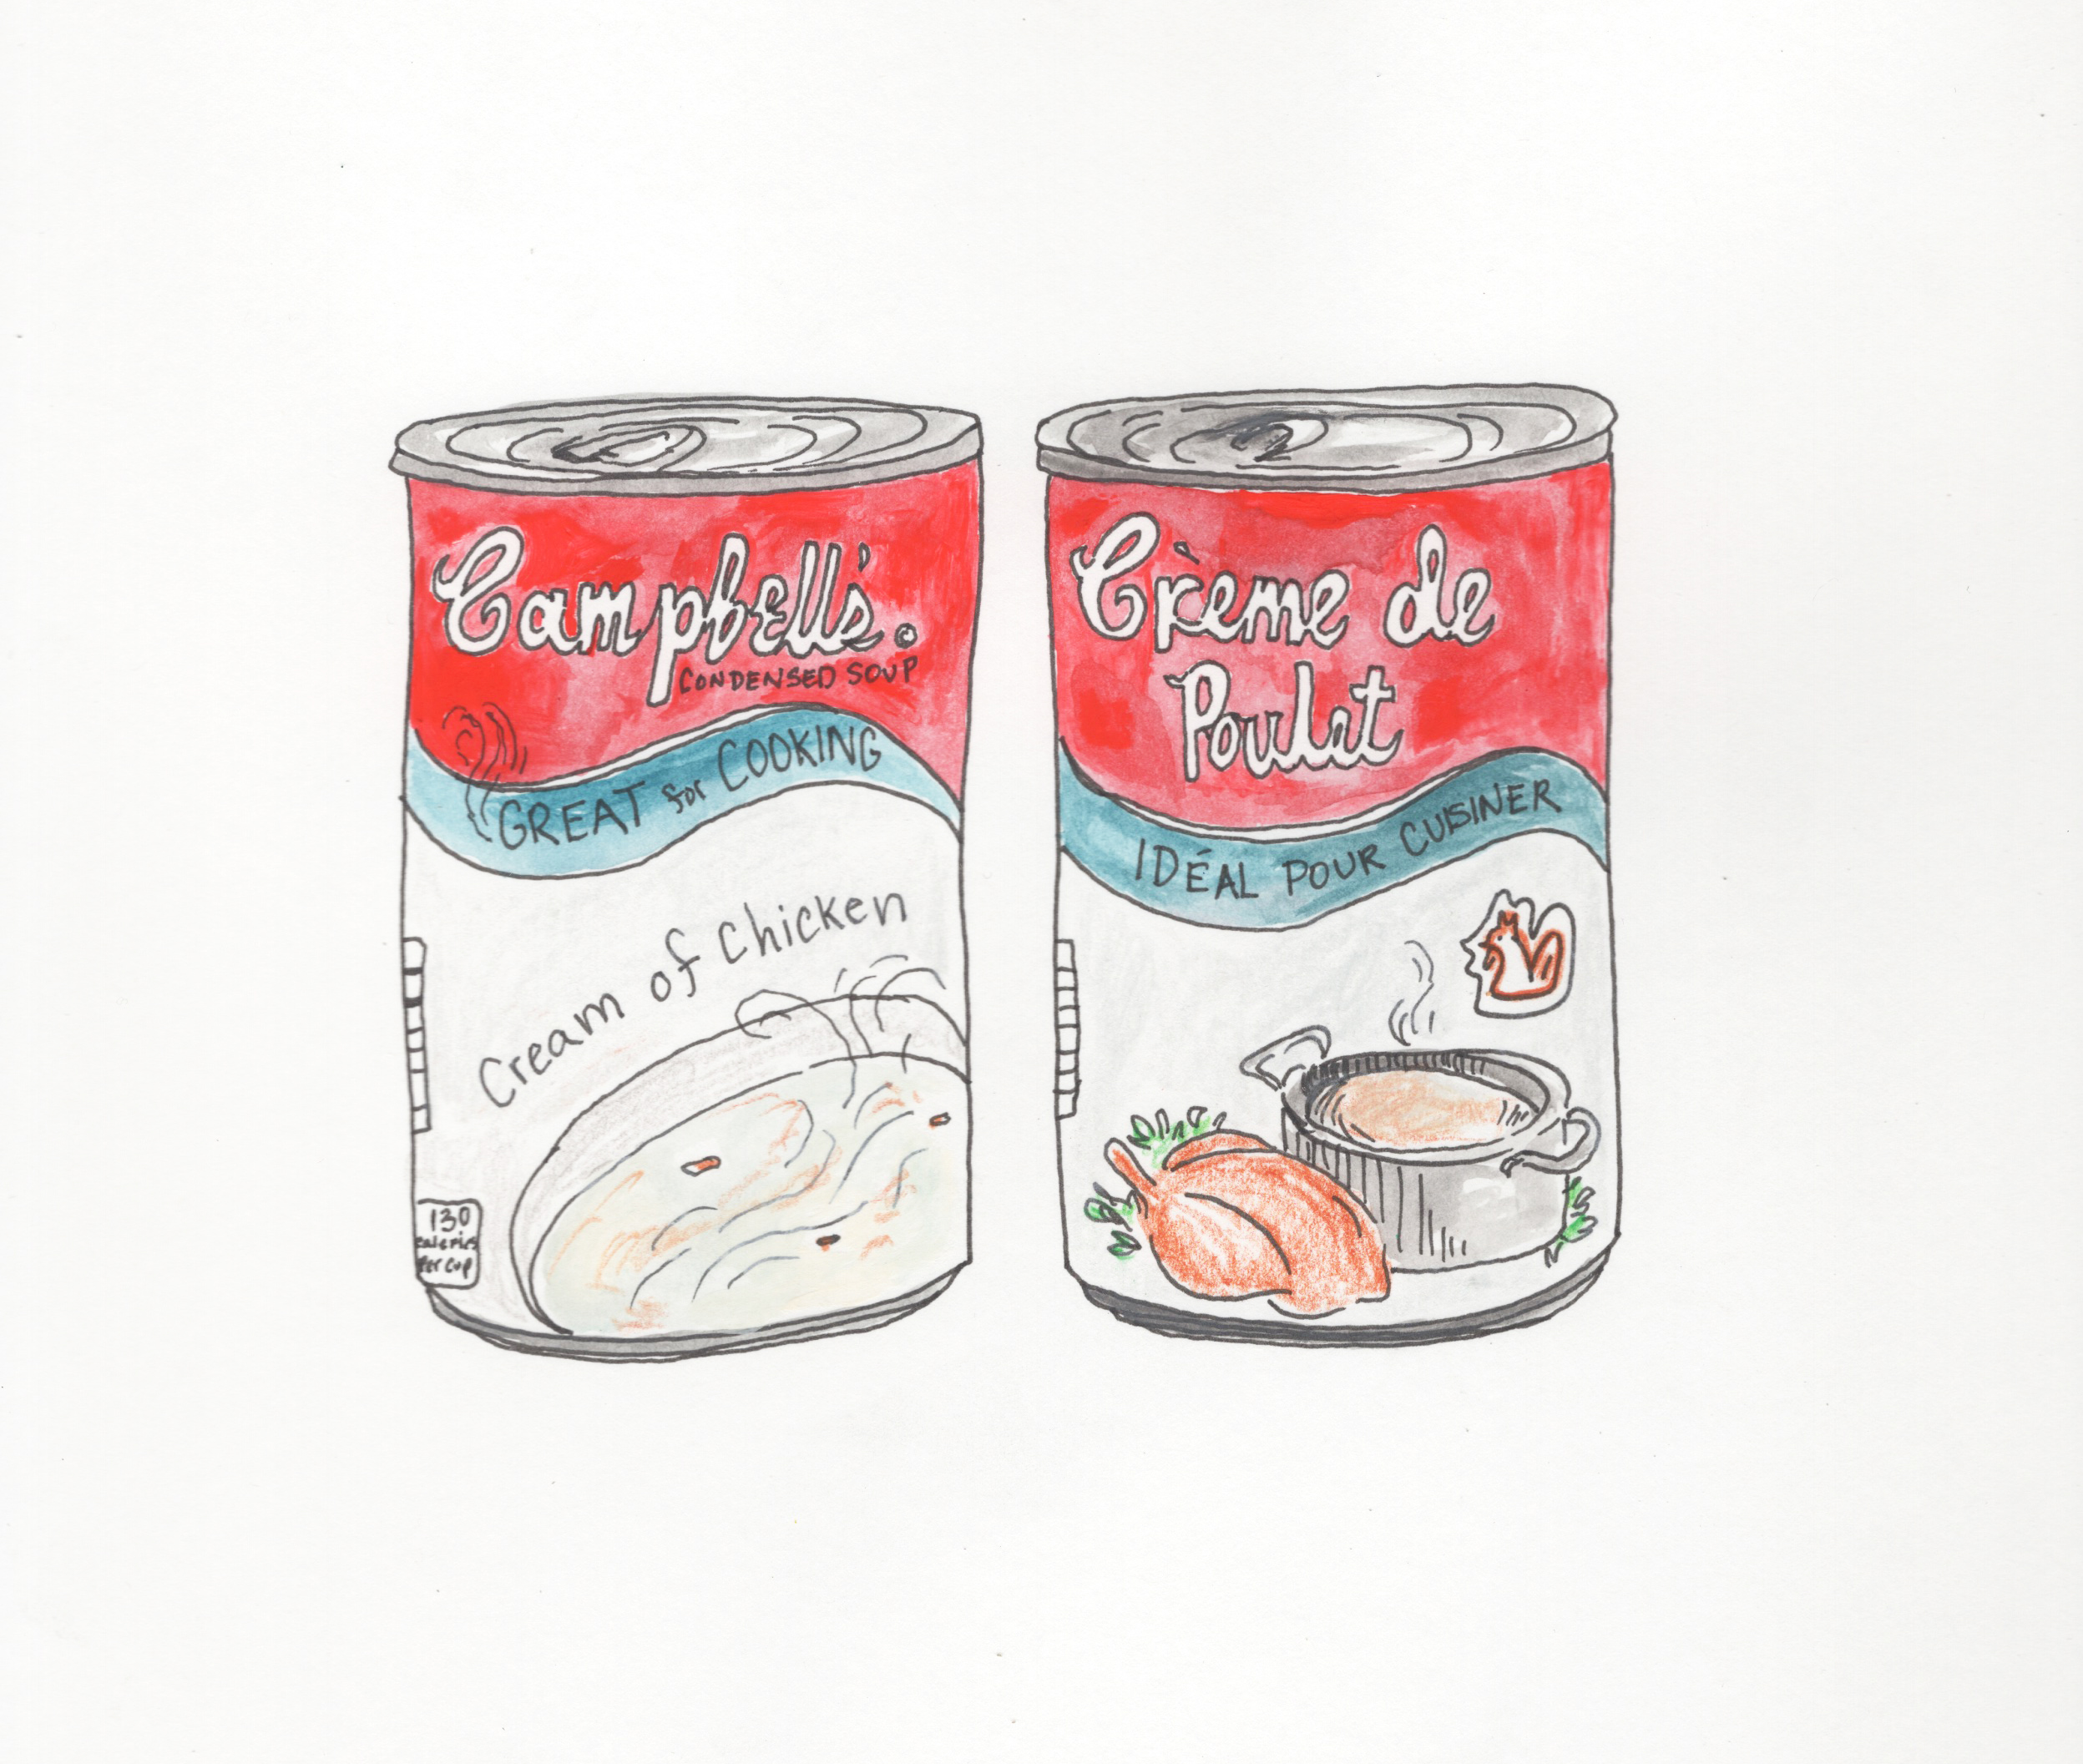 What is the French version of Campbell's Soup?